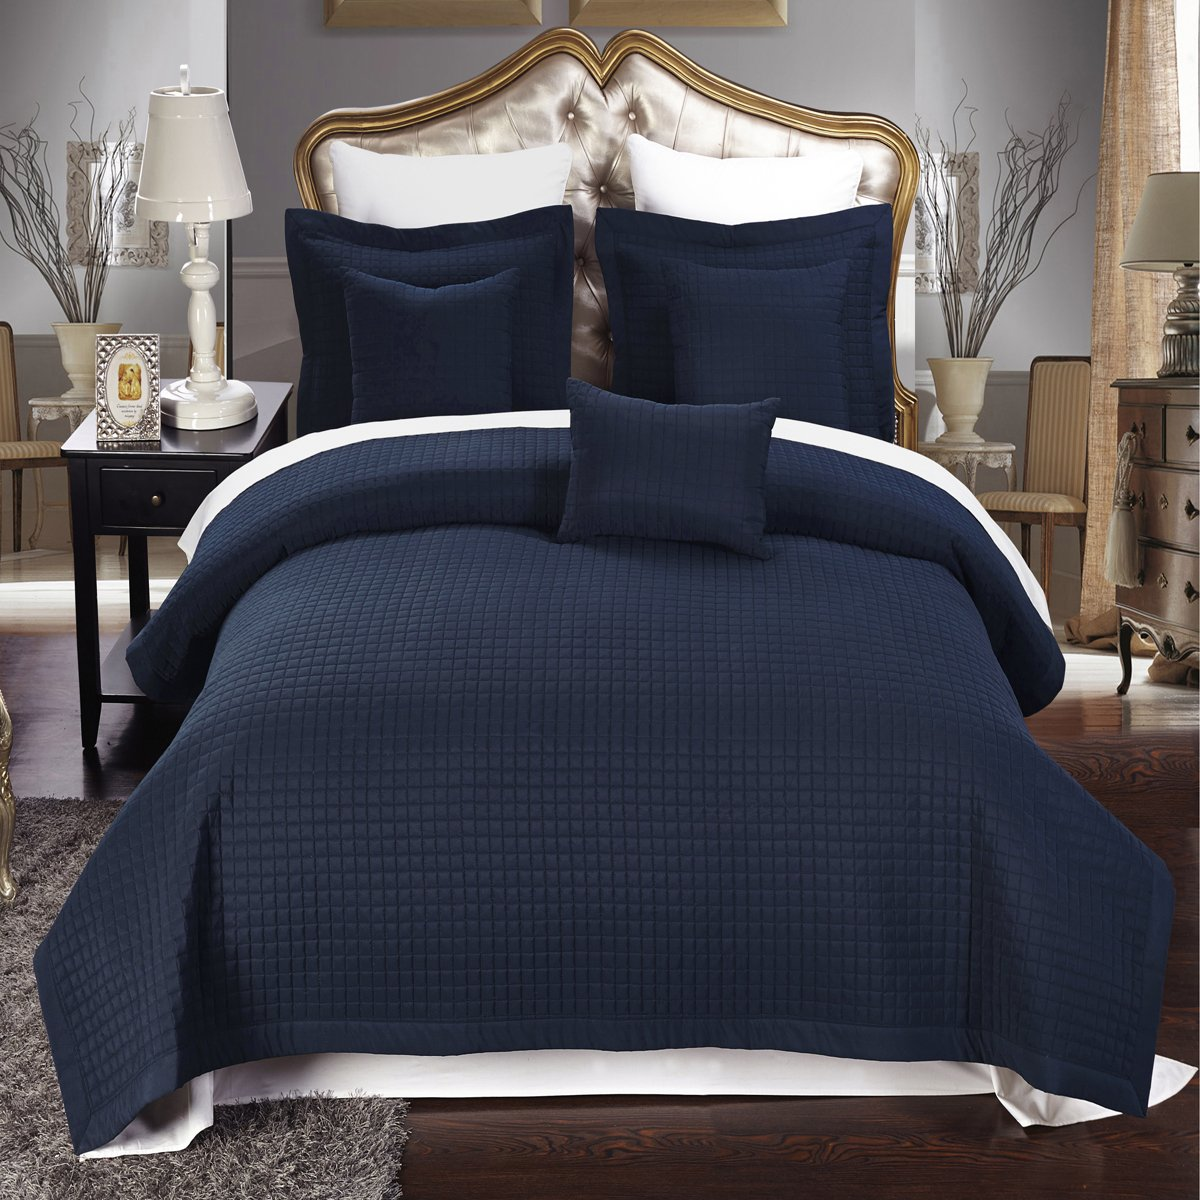 Royal blue and navy bedding sets ease bedding with style - Housse de couette jersey ...